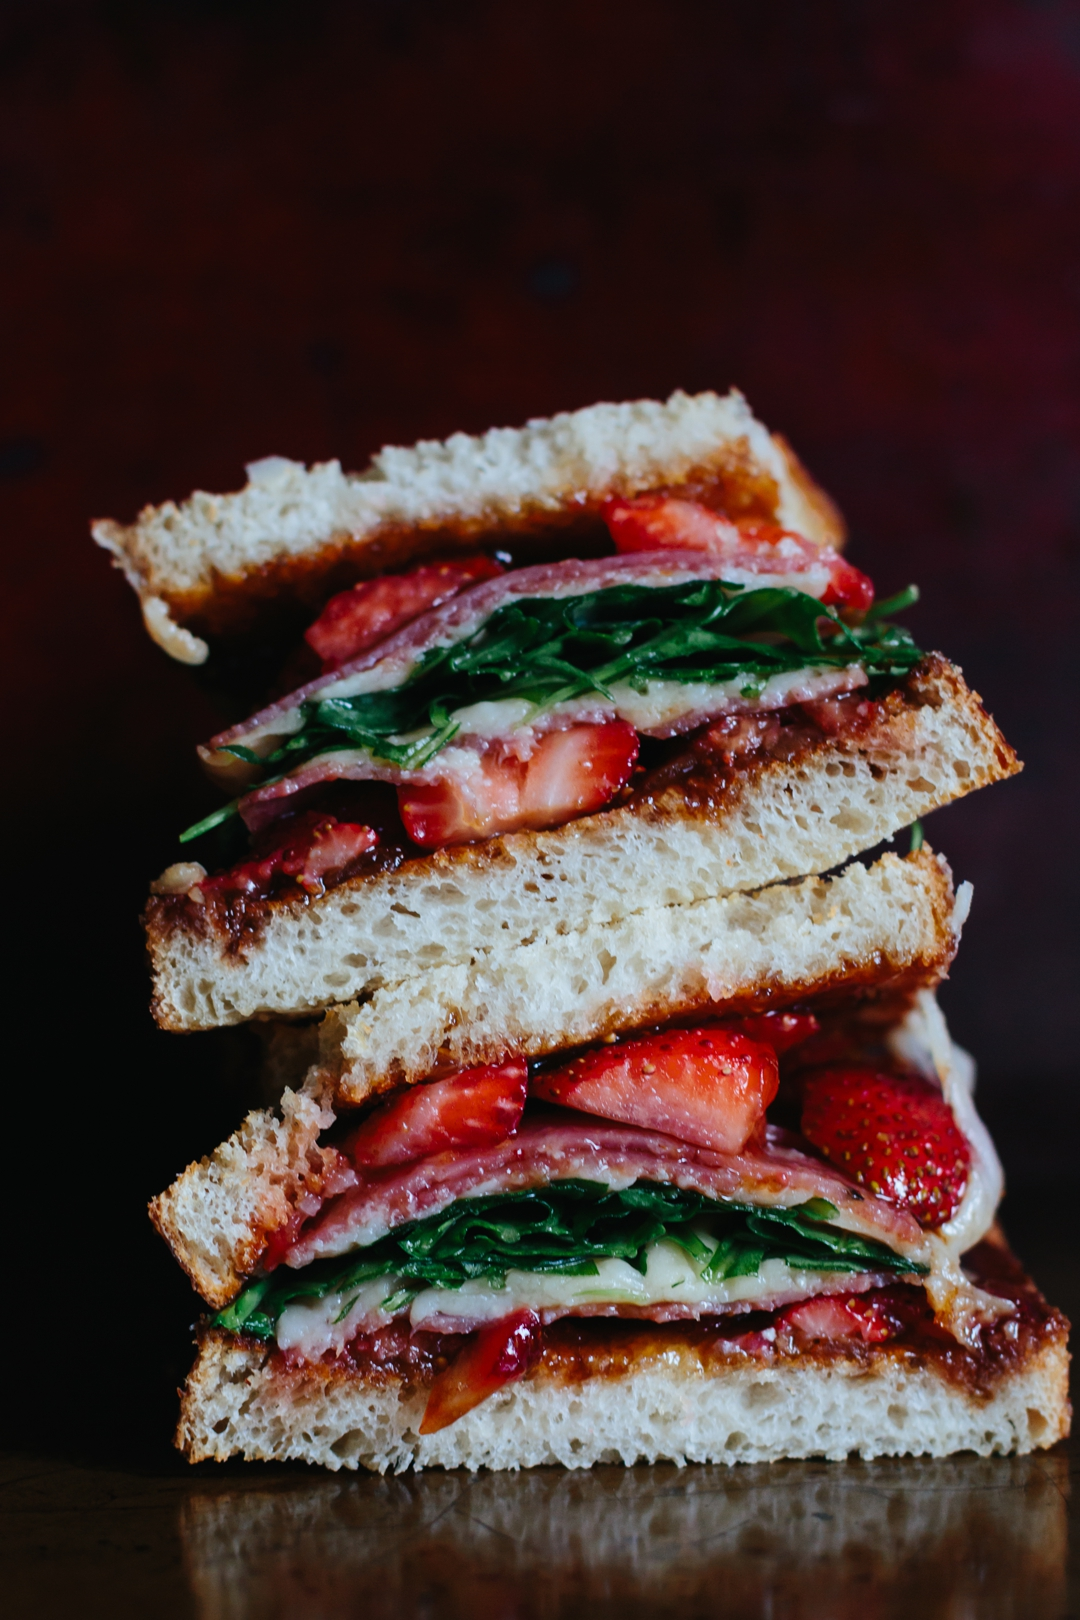 Strawberry Grilled Cheese is sweet and savory perfection with fig jam, balsamic soaked strawberries, salami, aged white cheddar, and arugula. #grilledcheese #sandwich #strawberries #figjam | www.megiswell.com